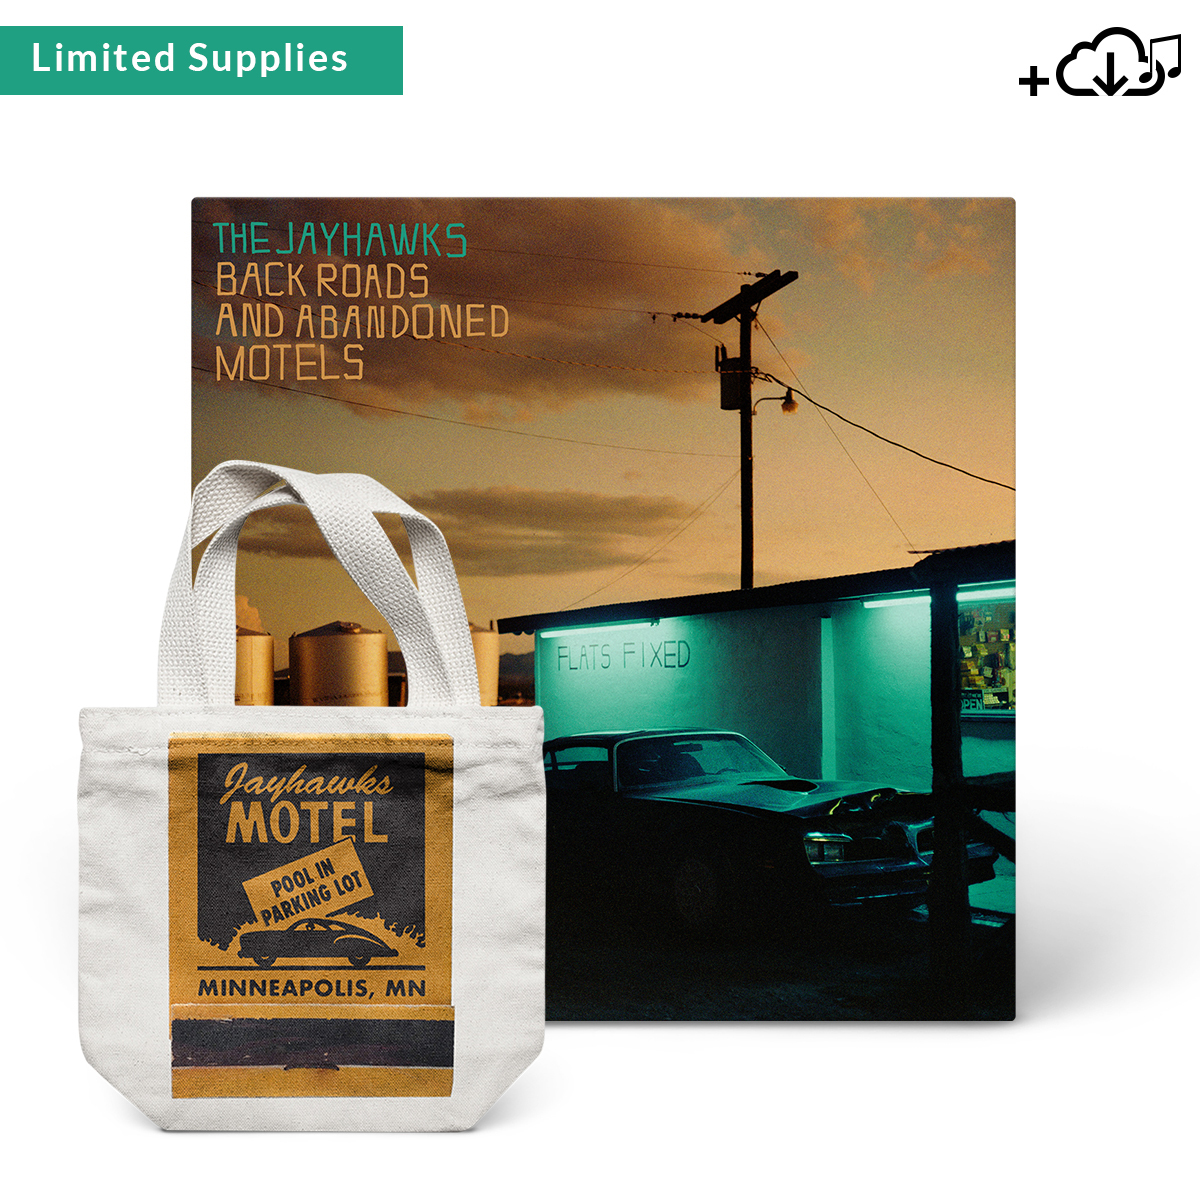 Jayhawks Motel Tote + Back Roads and Abandoned Motels Album